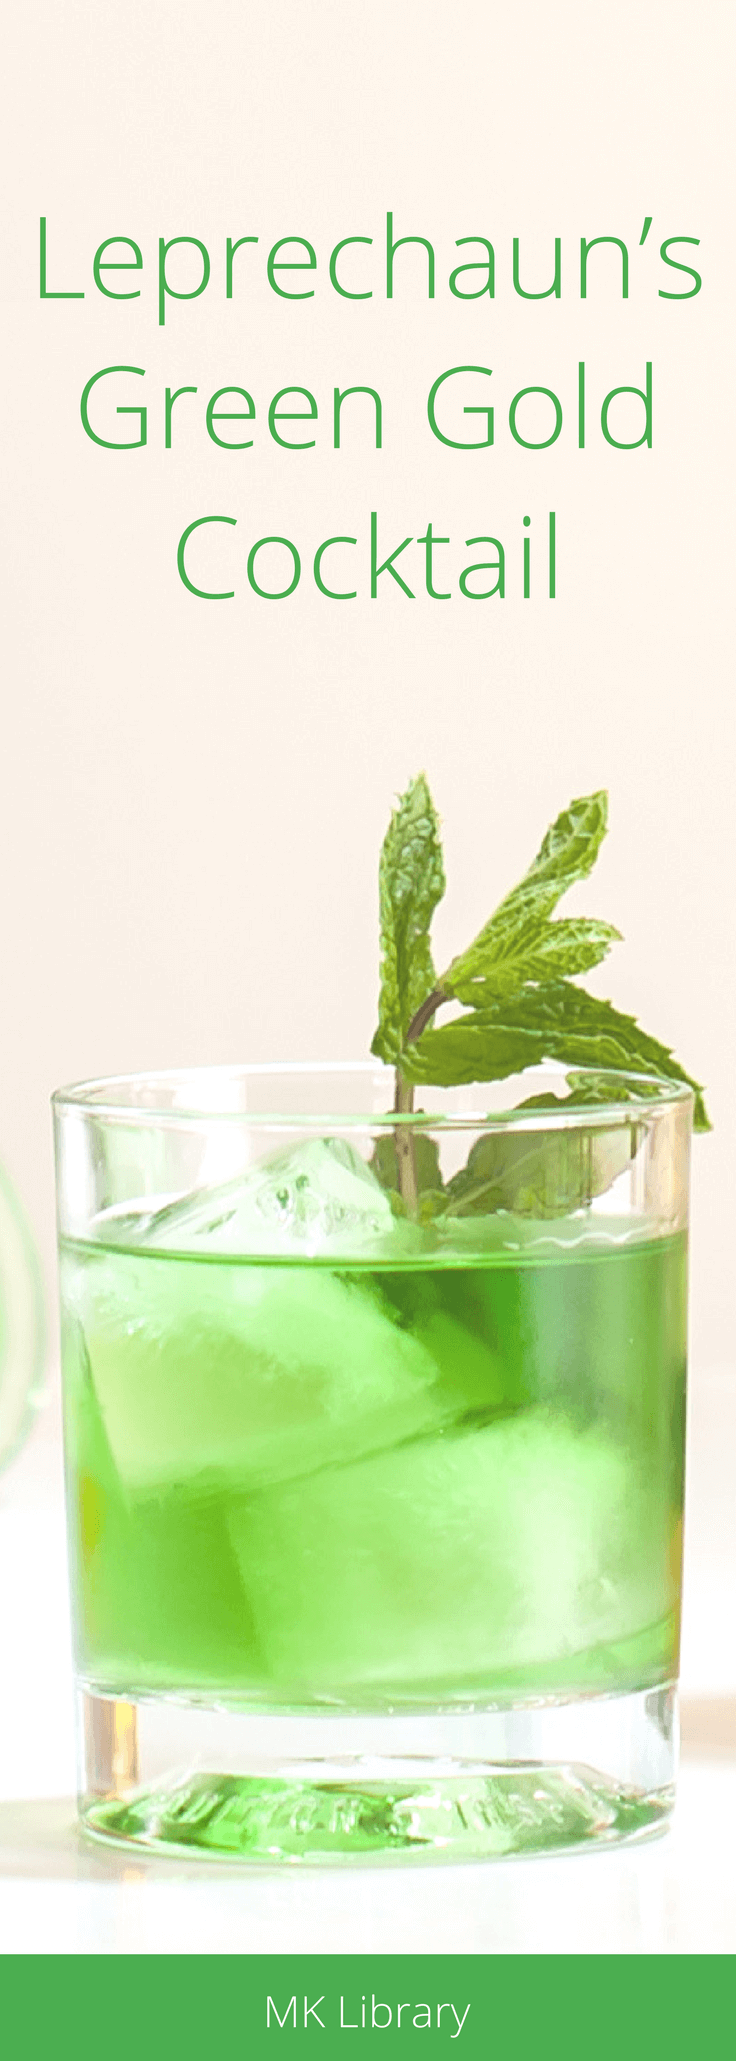 Leprechauns Green Gold Cocktail Recipe Pinterest